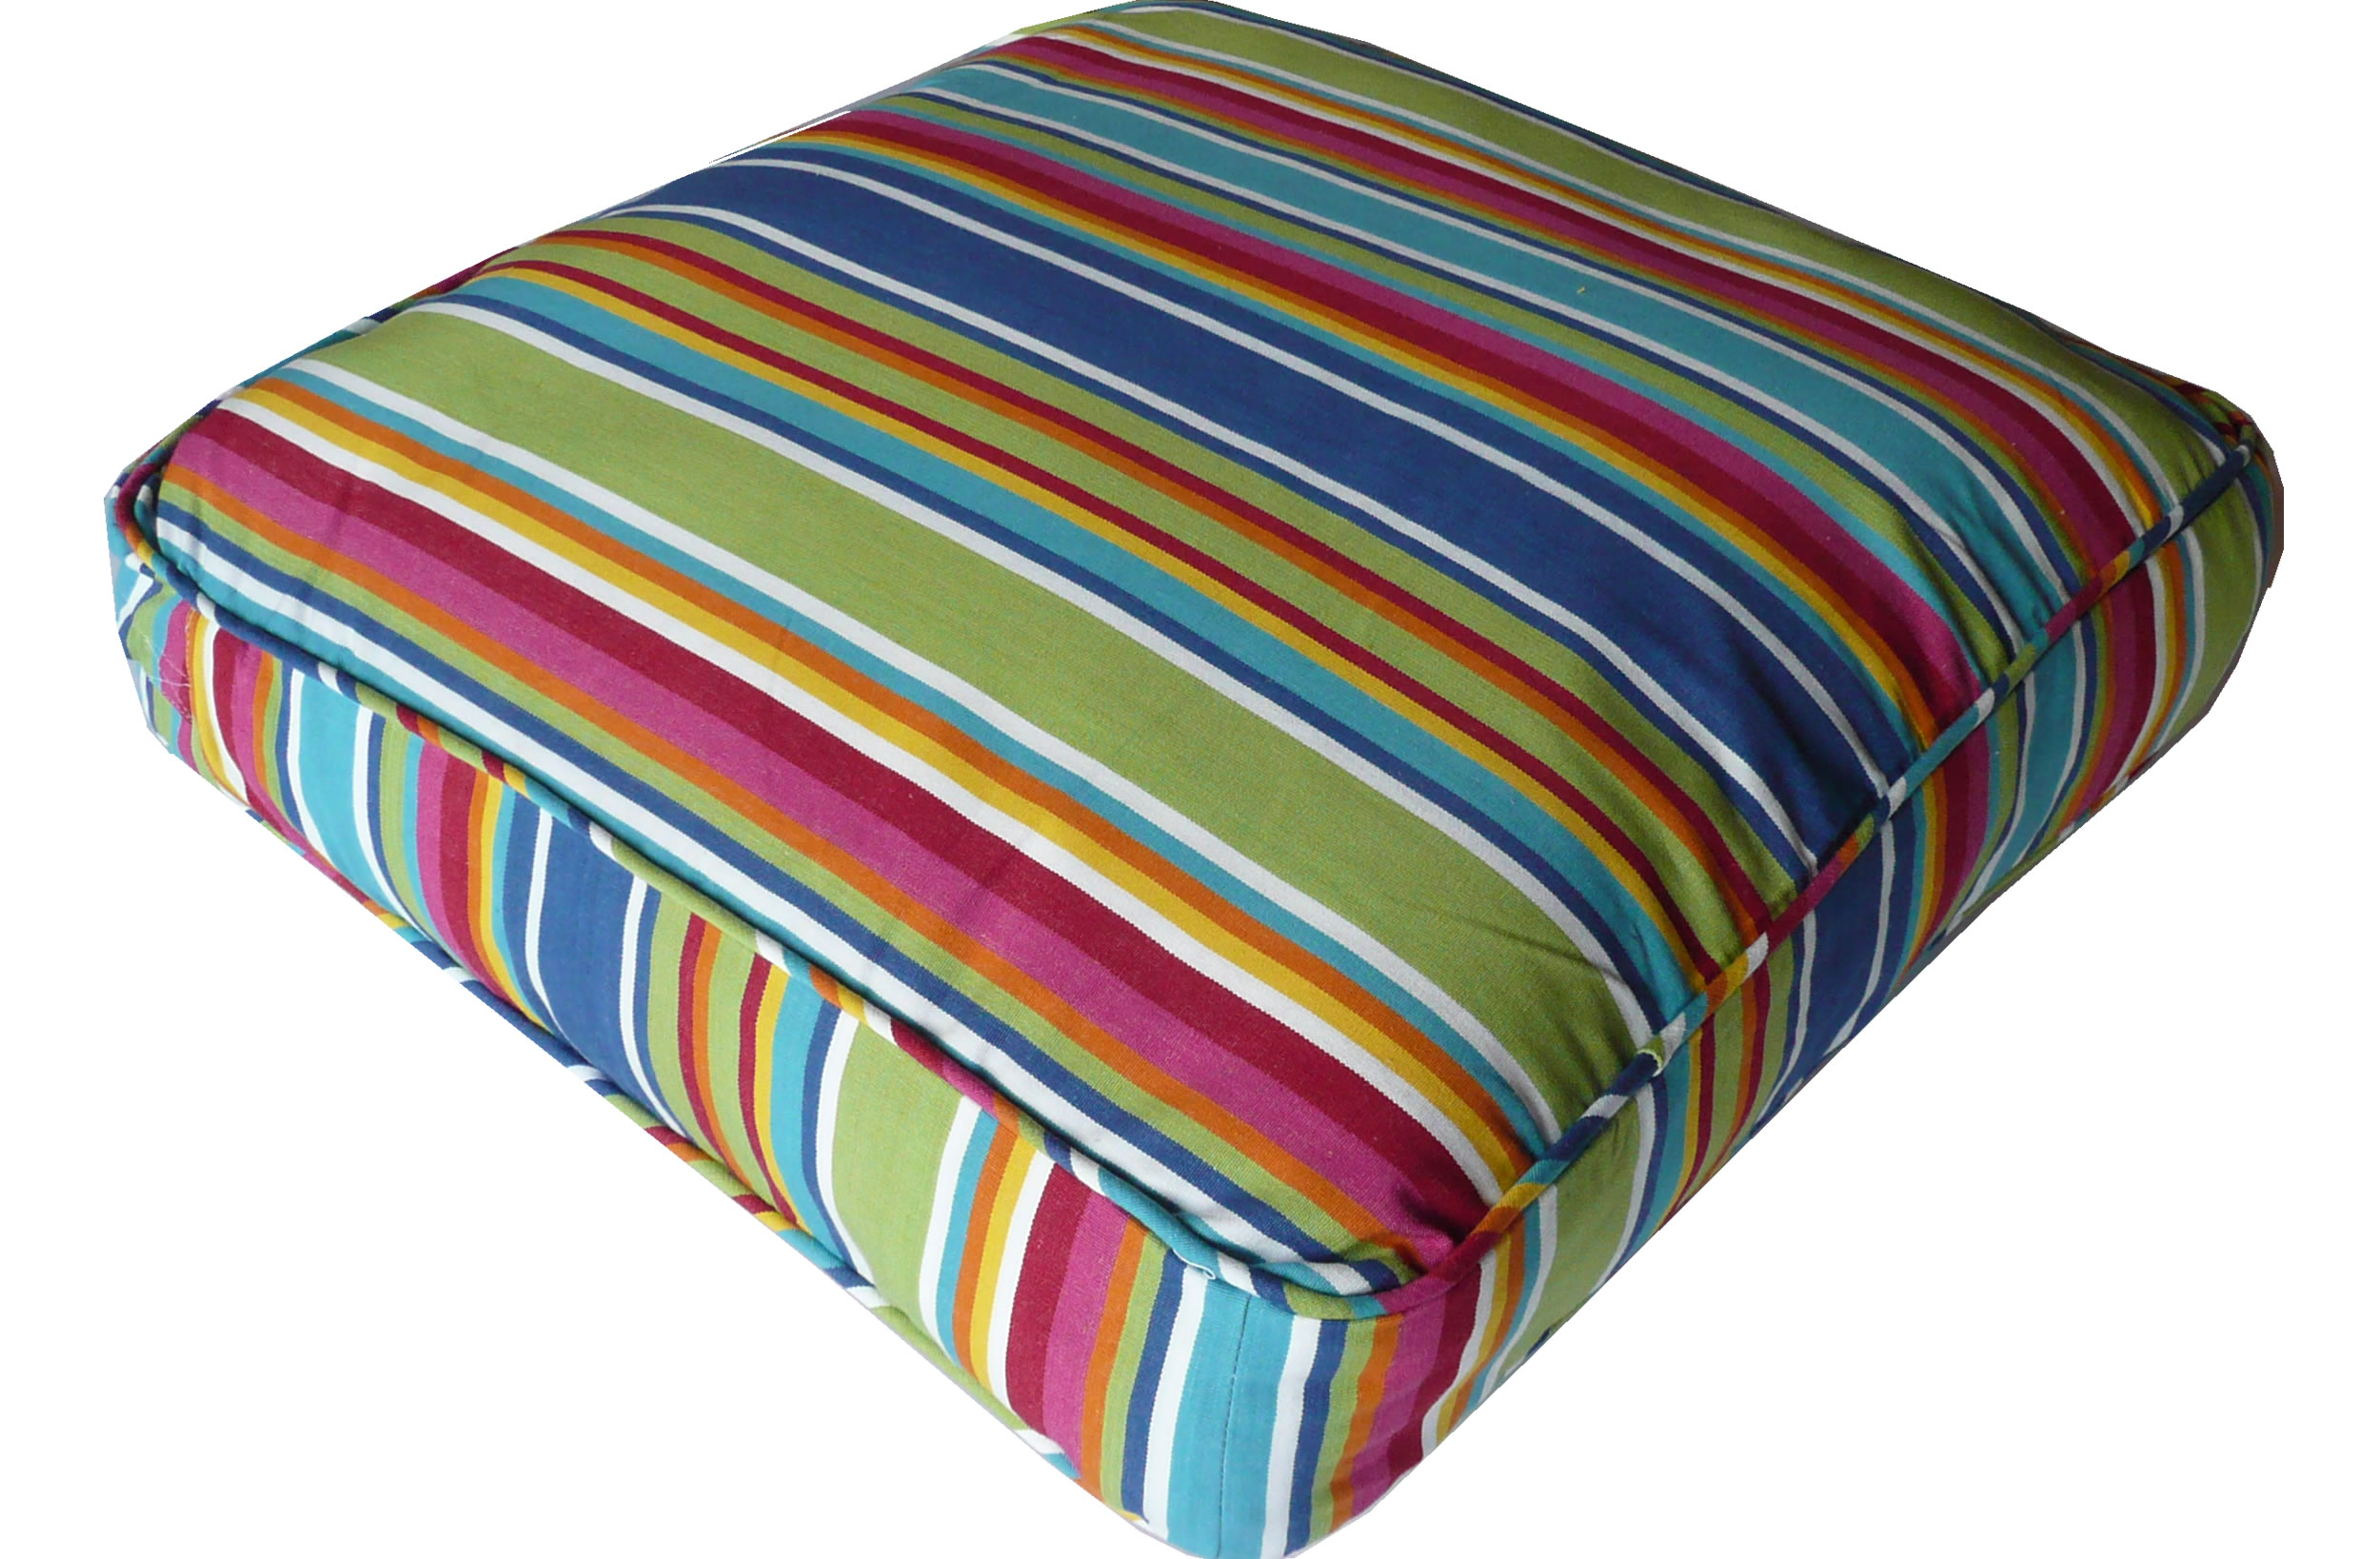 Blue Large Floor Cushions - Climbing Stripe